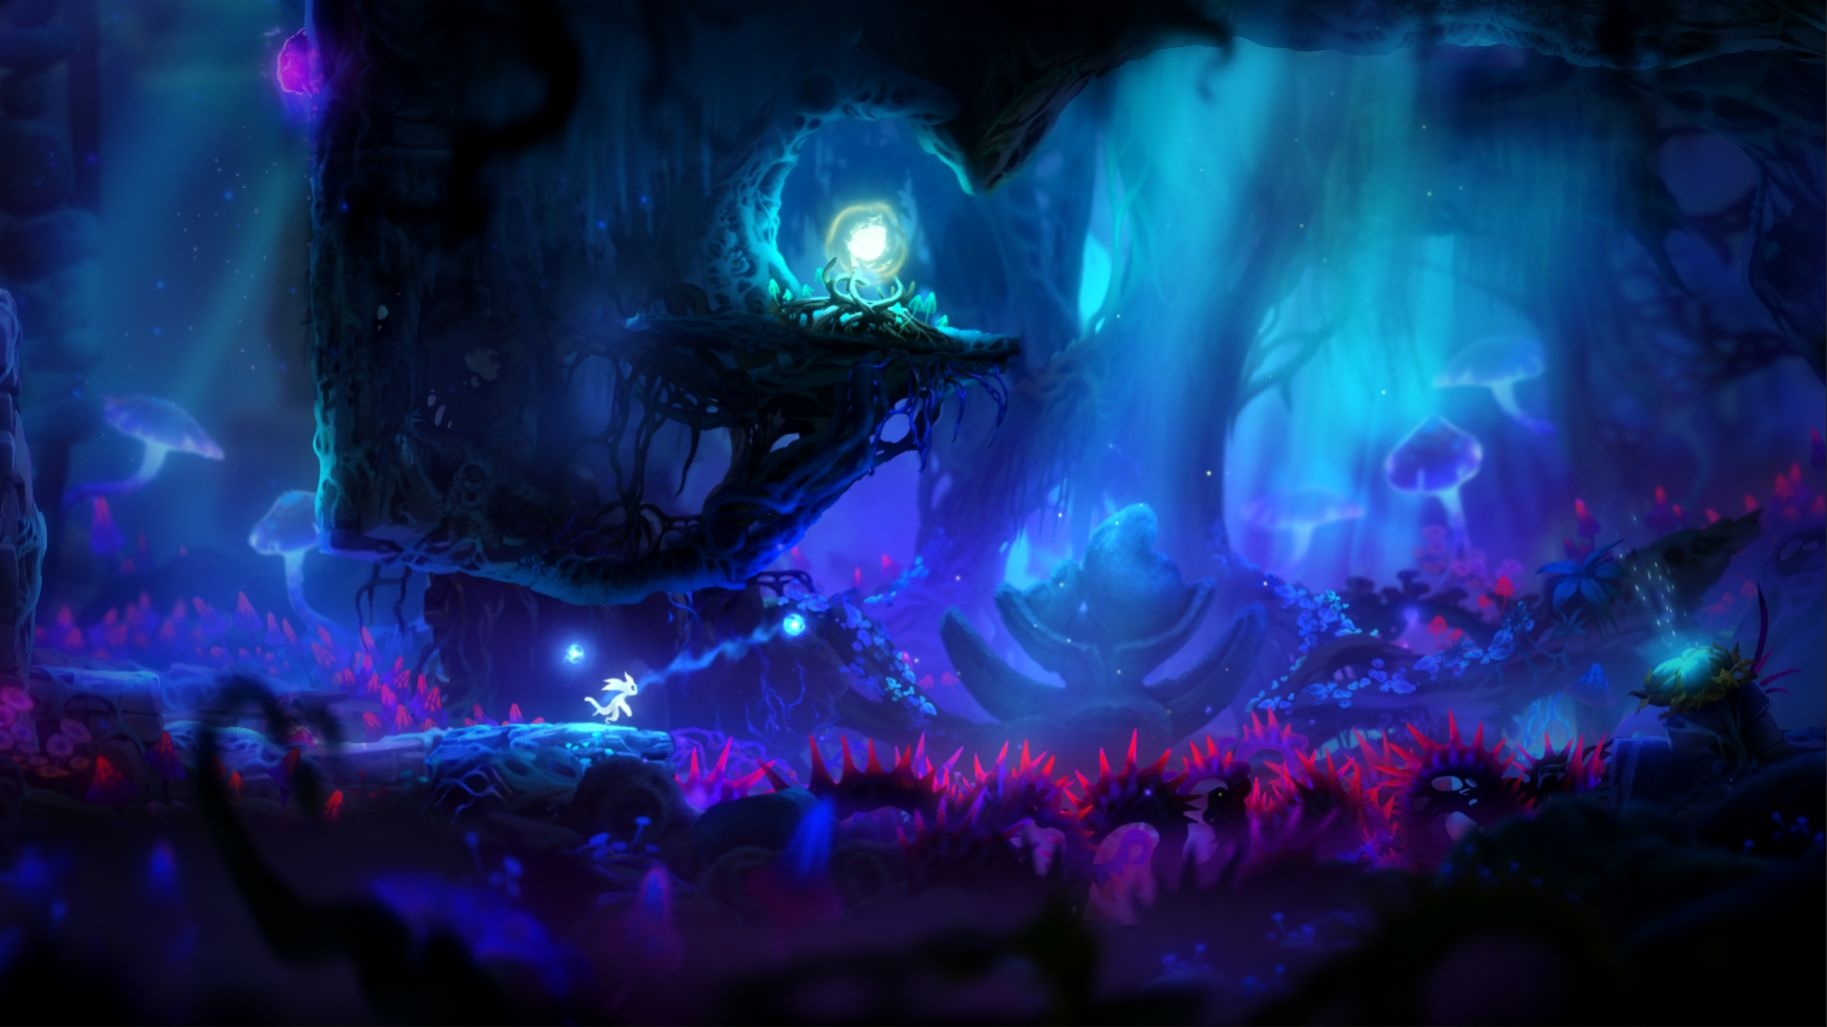 ori_and_the_blind_forest_definitive_edition_screenshot_20160301164816_11_original